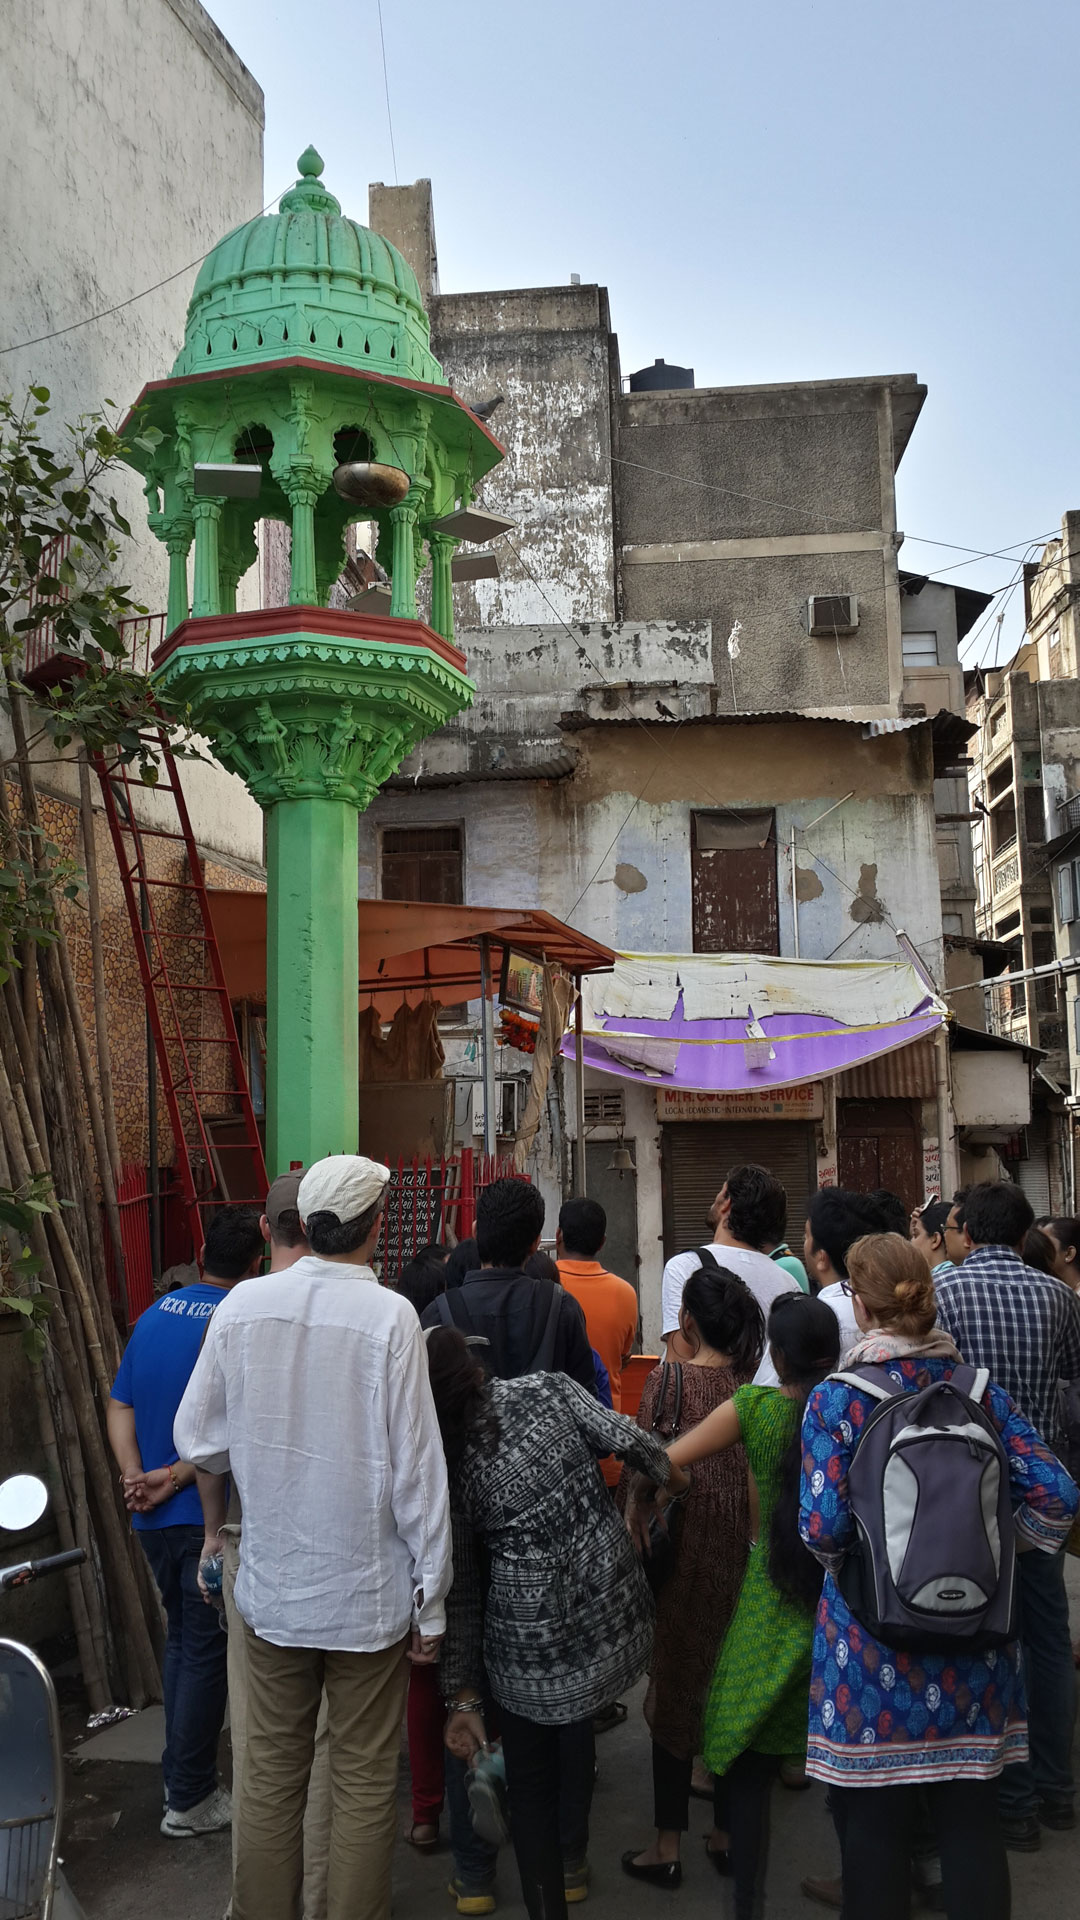 Bright green chabutro (bird feeder) in the streets of the old city in Ahmedabad